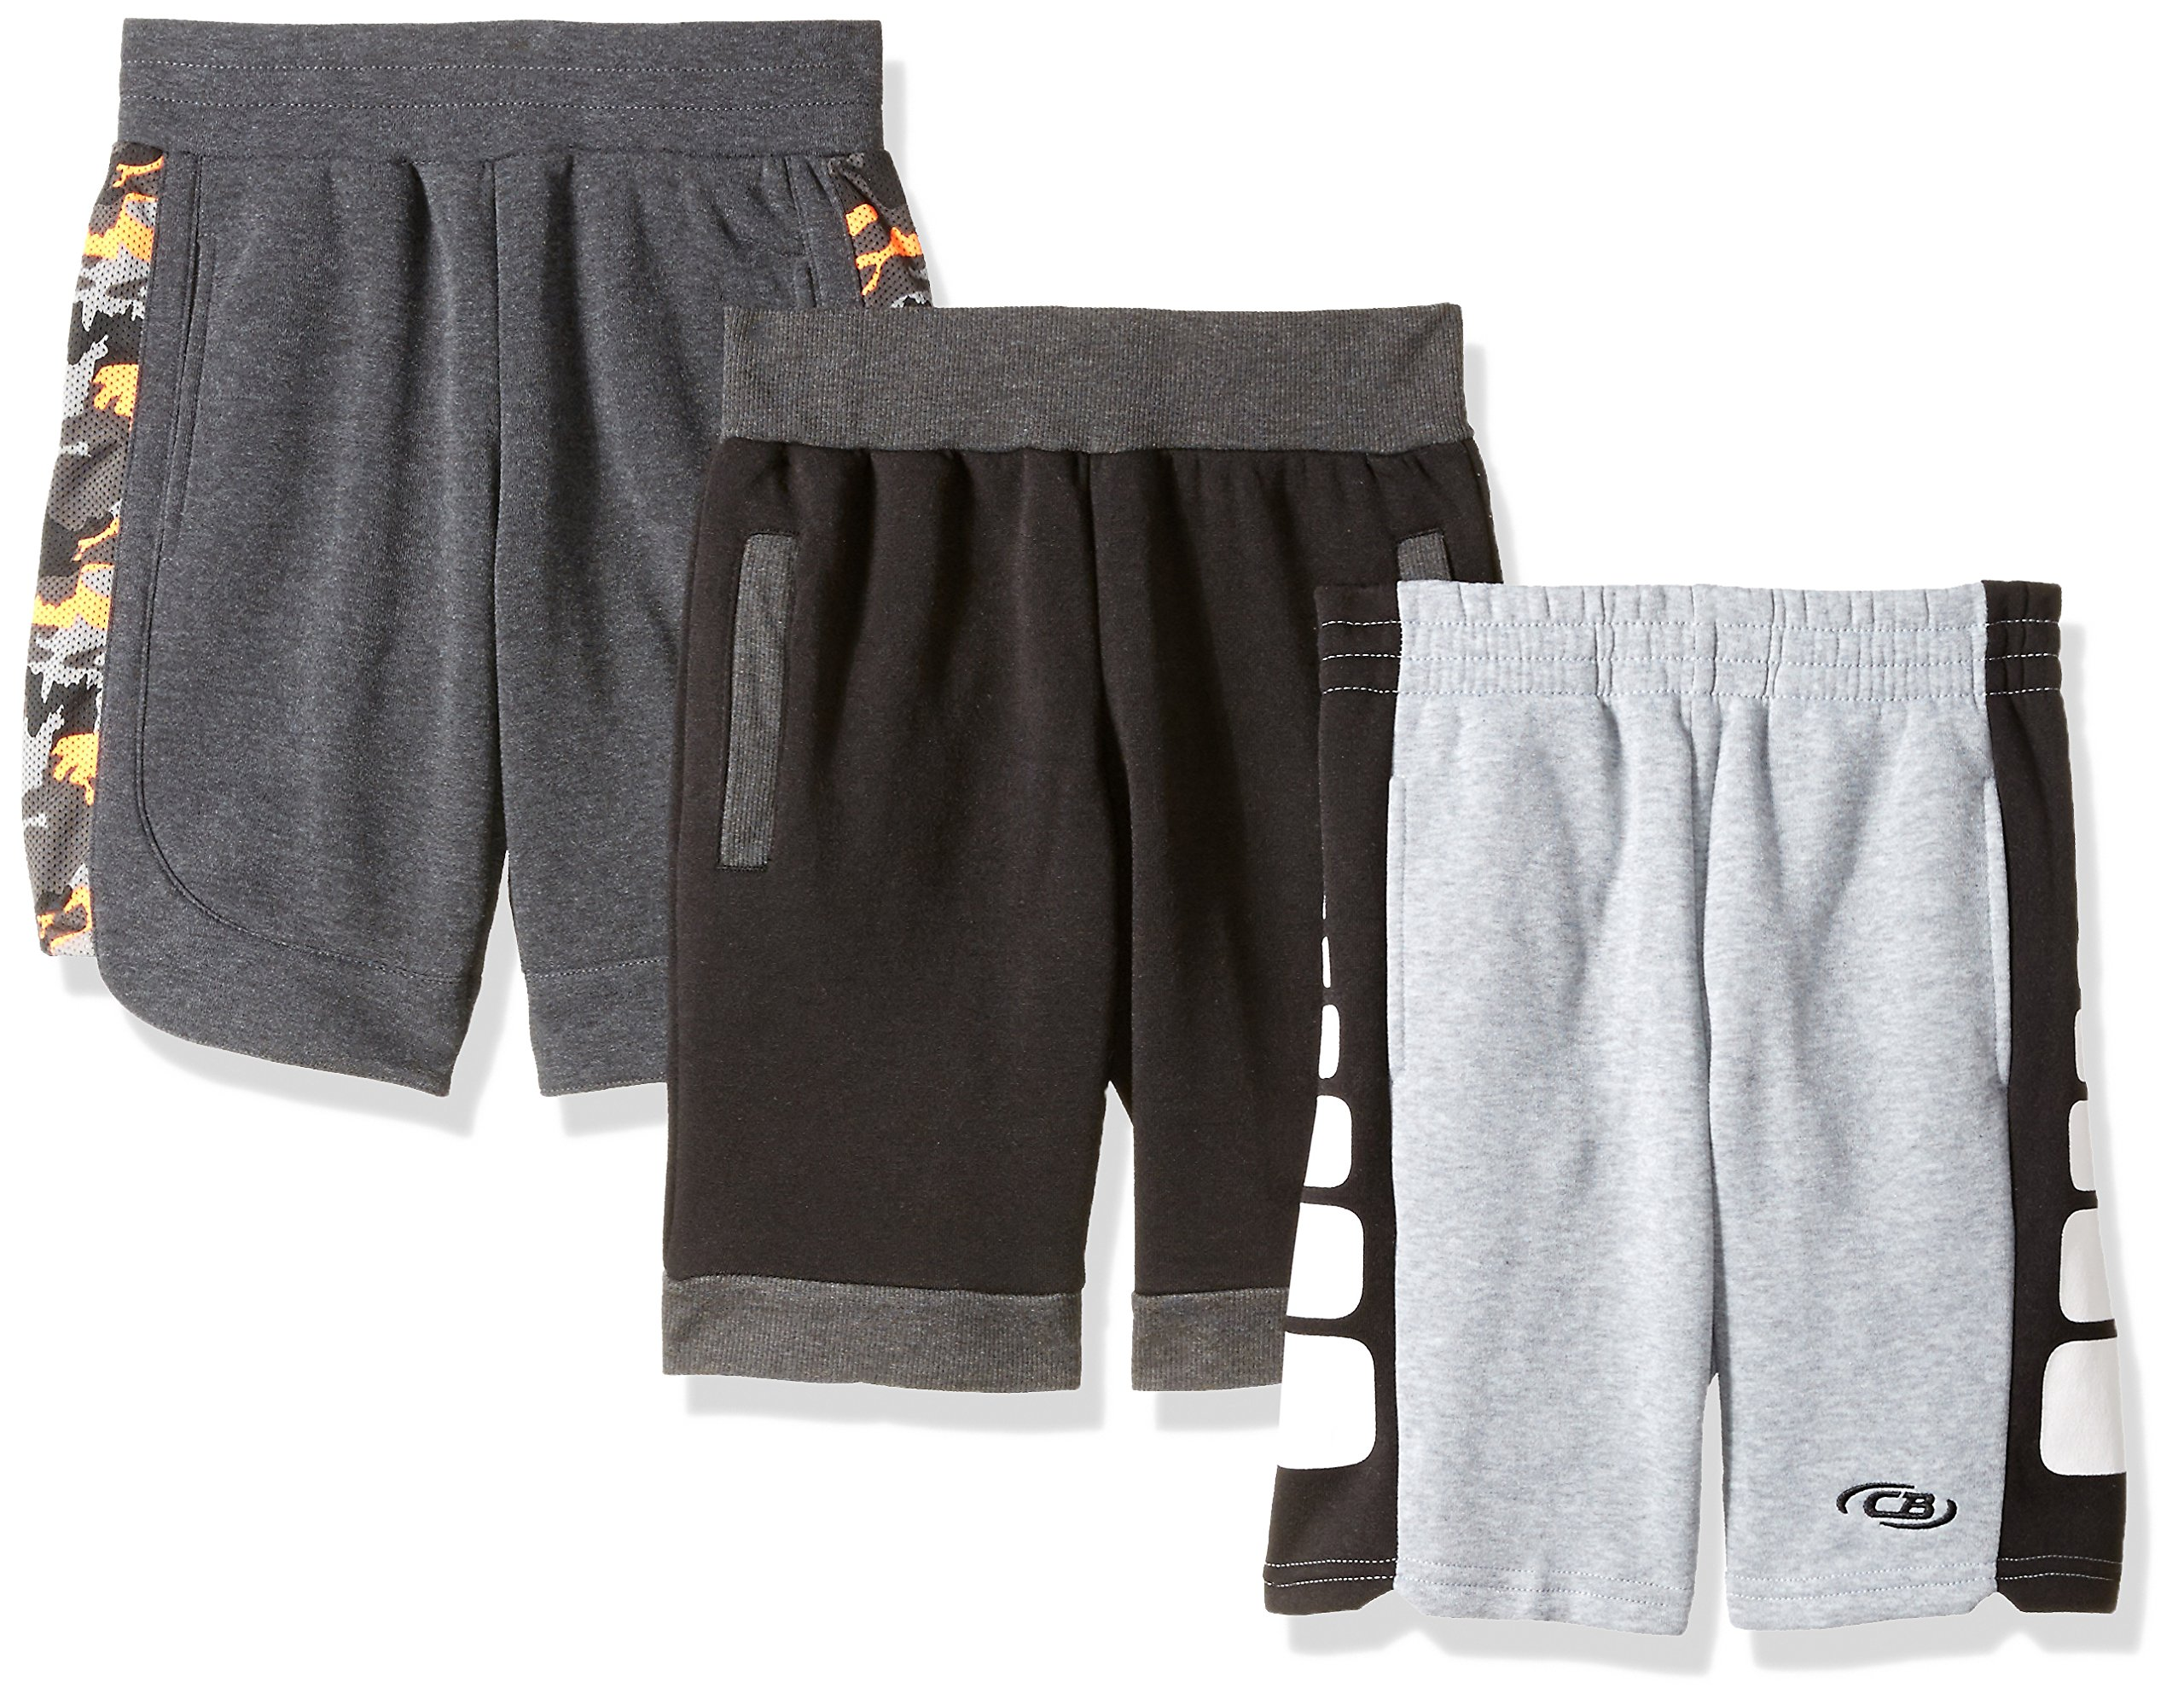 CB Sports Little Boys Multi Pack Athletic Shorts, 3 Pack-Multi-SR79, 5/6